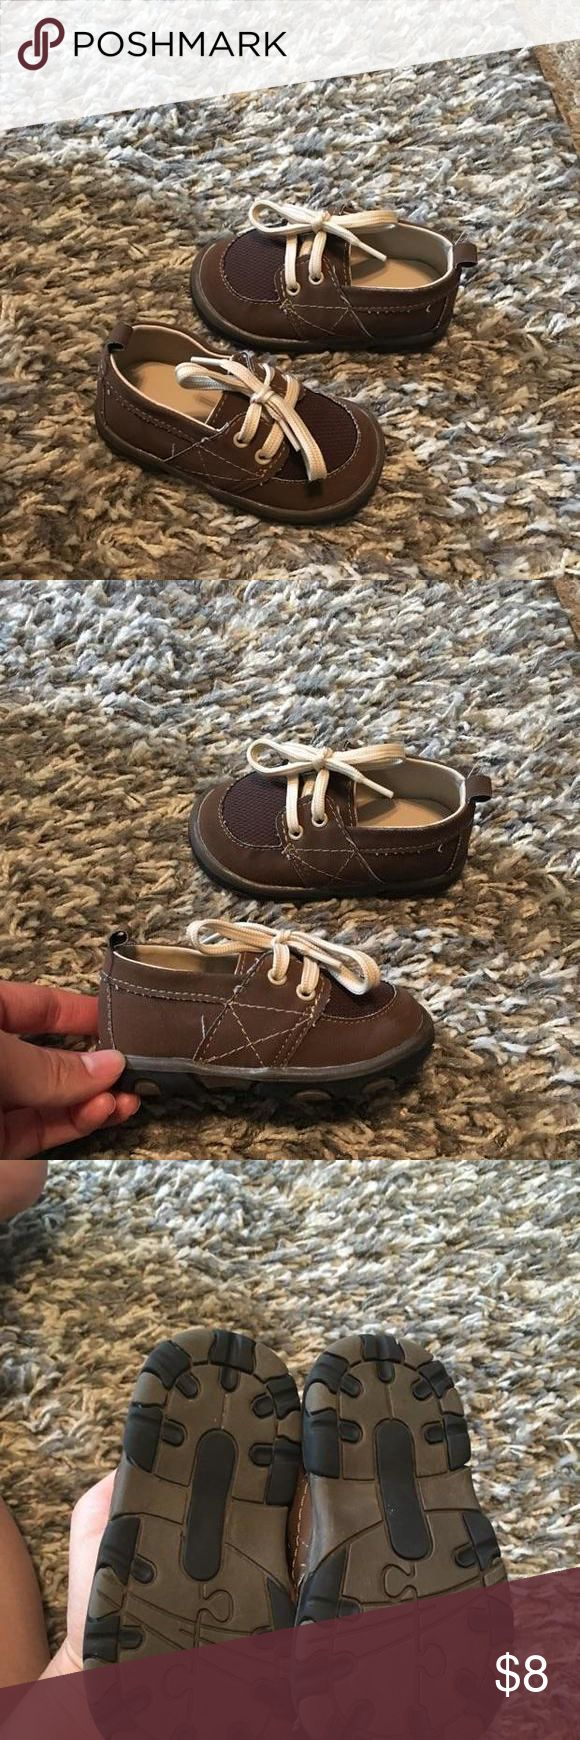 Adorable brown casual shoes I loved pairing these with khakis or jeans on my little guy.. He was not yet walking when wore these so theyre in great condition still! Shoes